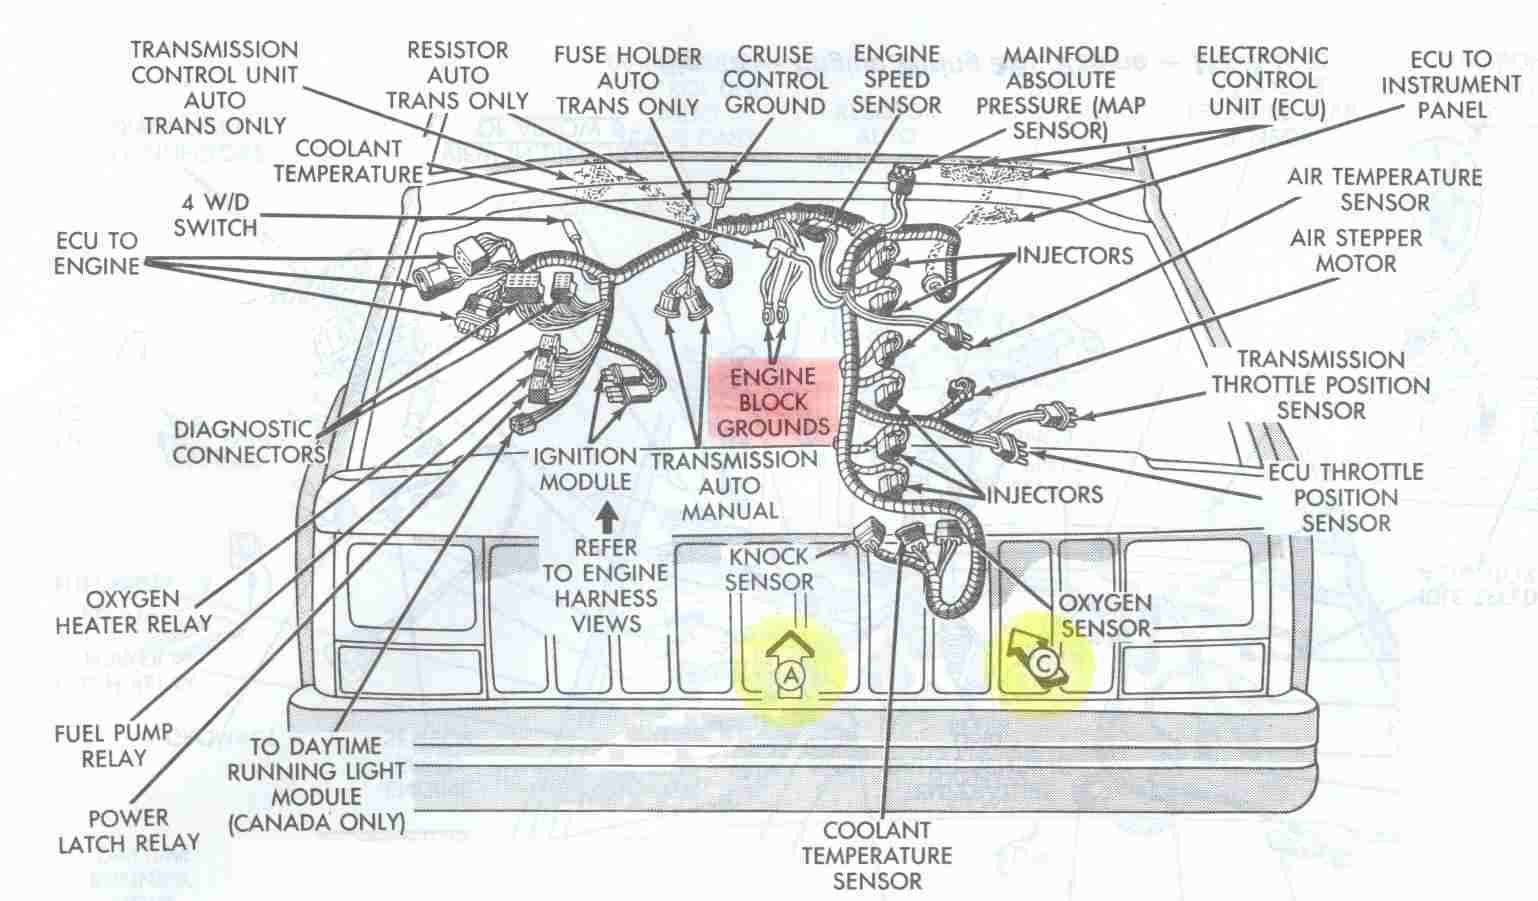 ab0134a7d9e021431187af597eb4aeca engine bay schematic showing major electrical ground points for  at bayanpartner.co